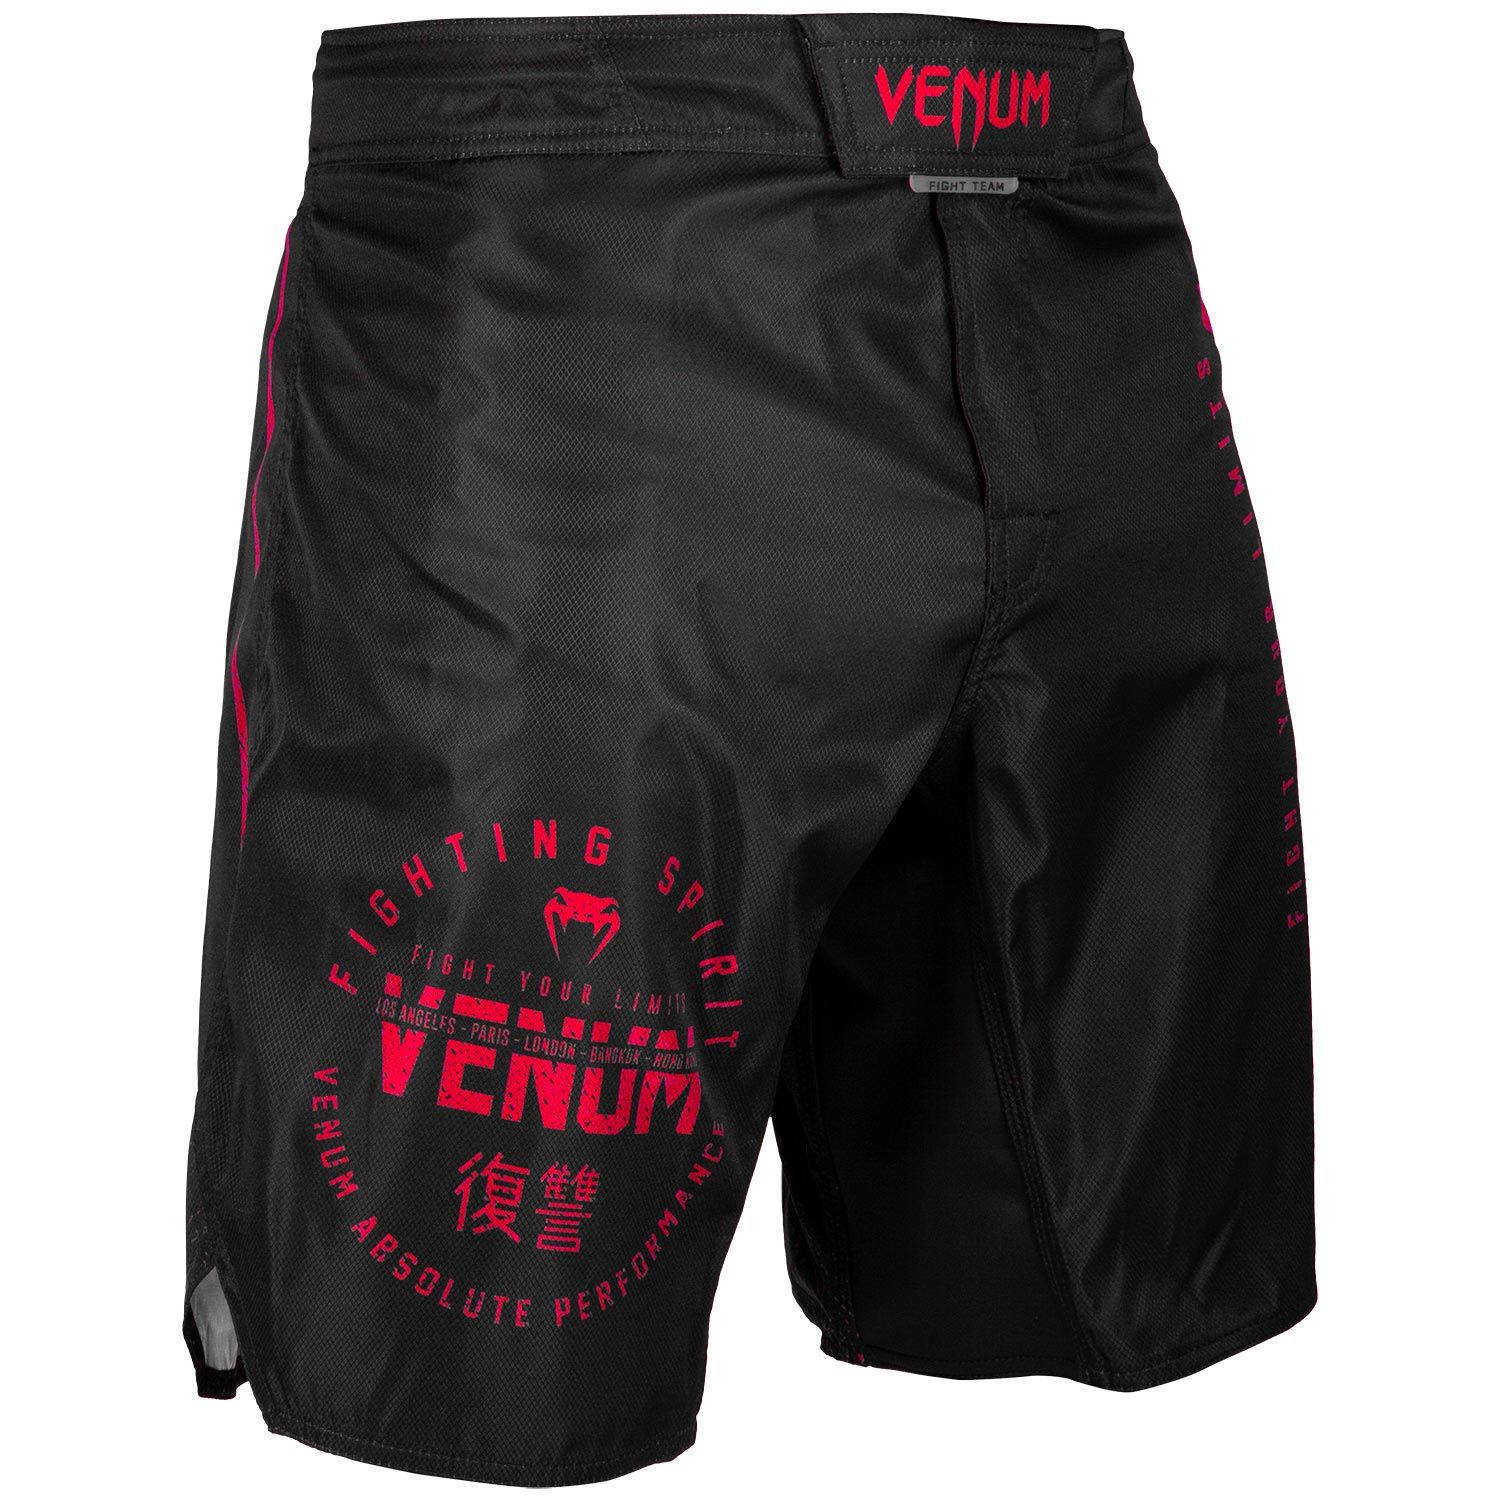 Fightshort Venum signature